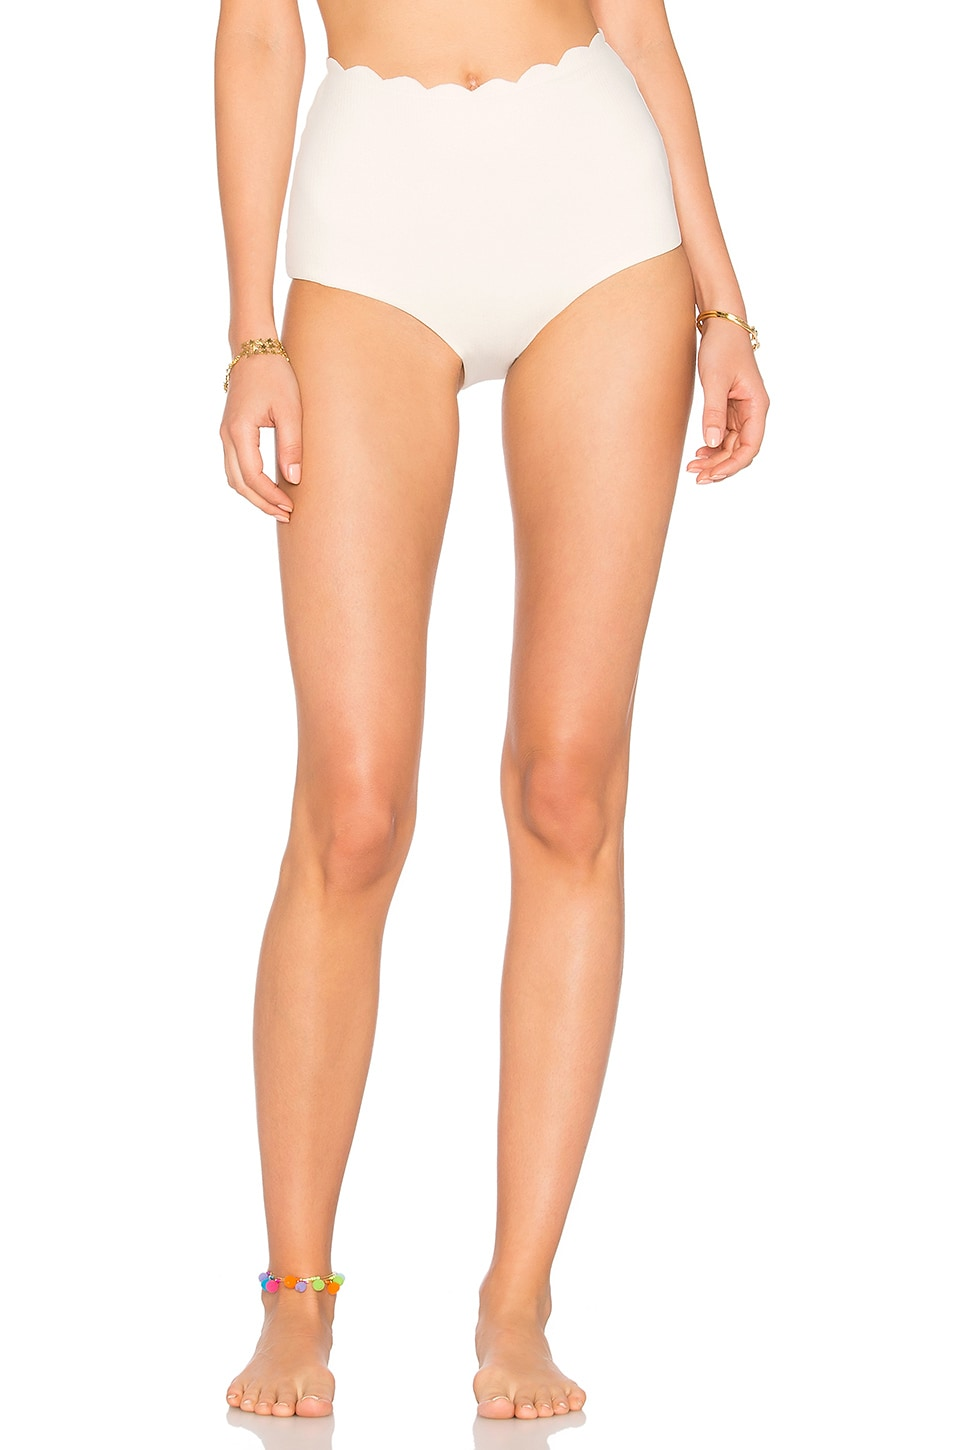 Marysia Swim Palm Springs High Waist Bikini Bottom in Coconut